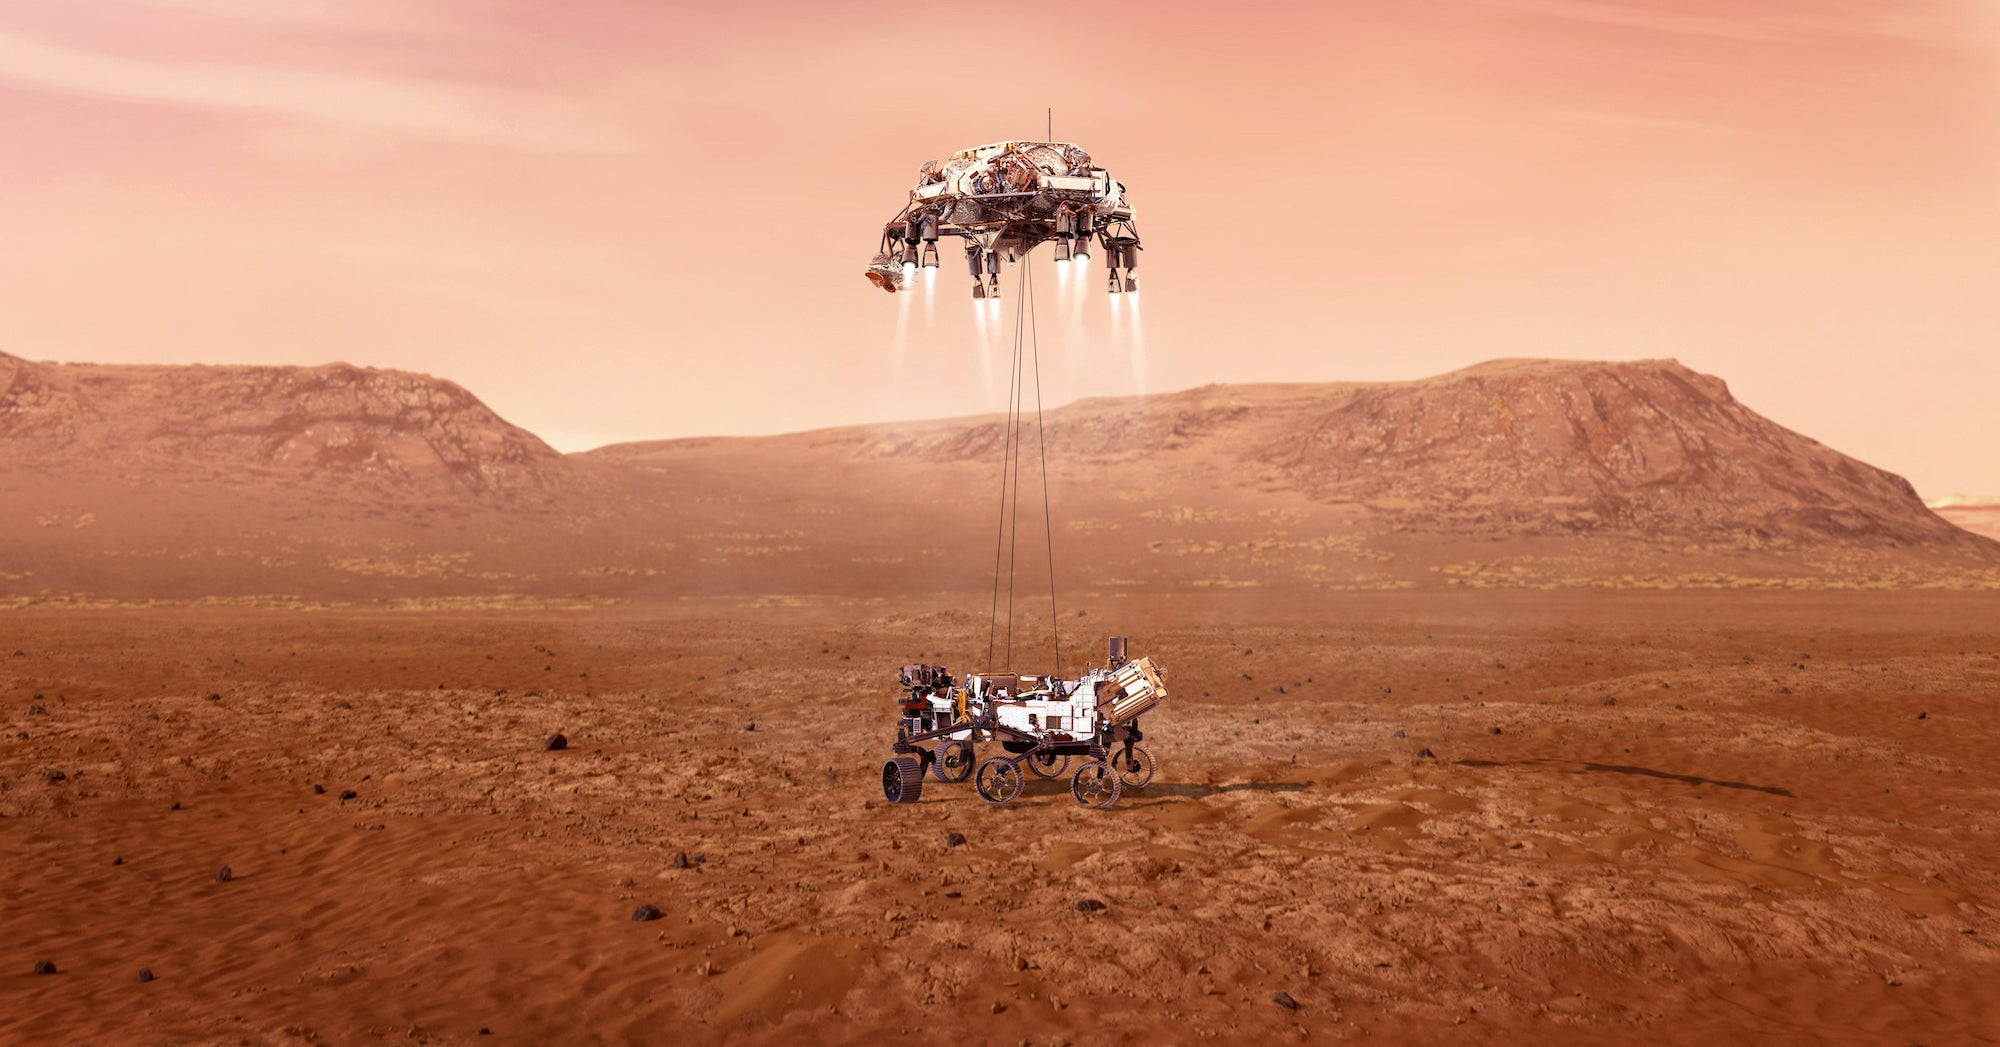 NASA's Perseverance Rover Has Landed On Mars To Search For Signs Of Ancient Life